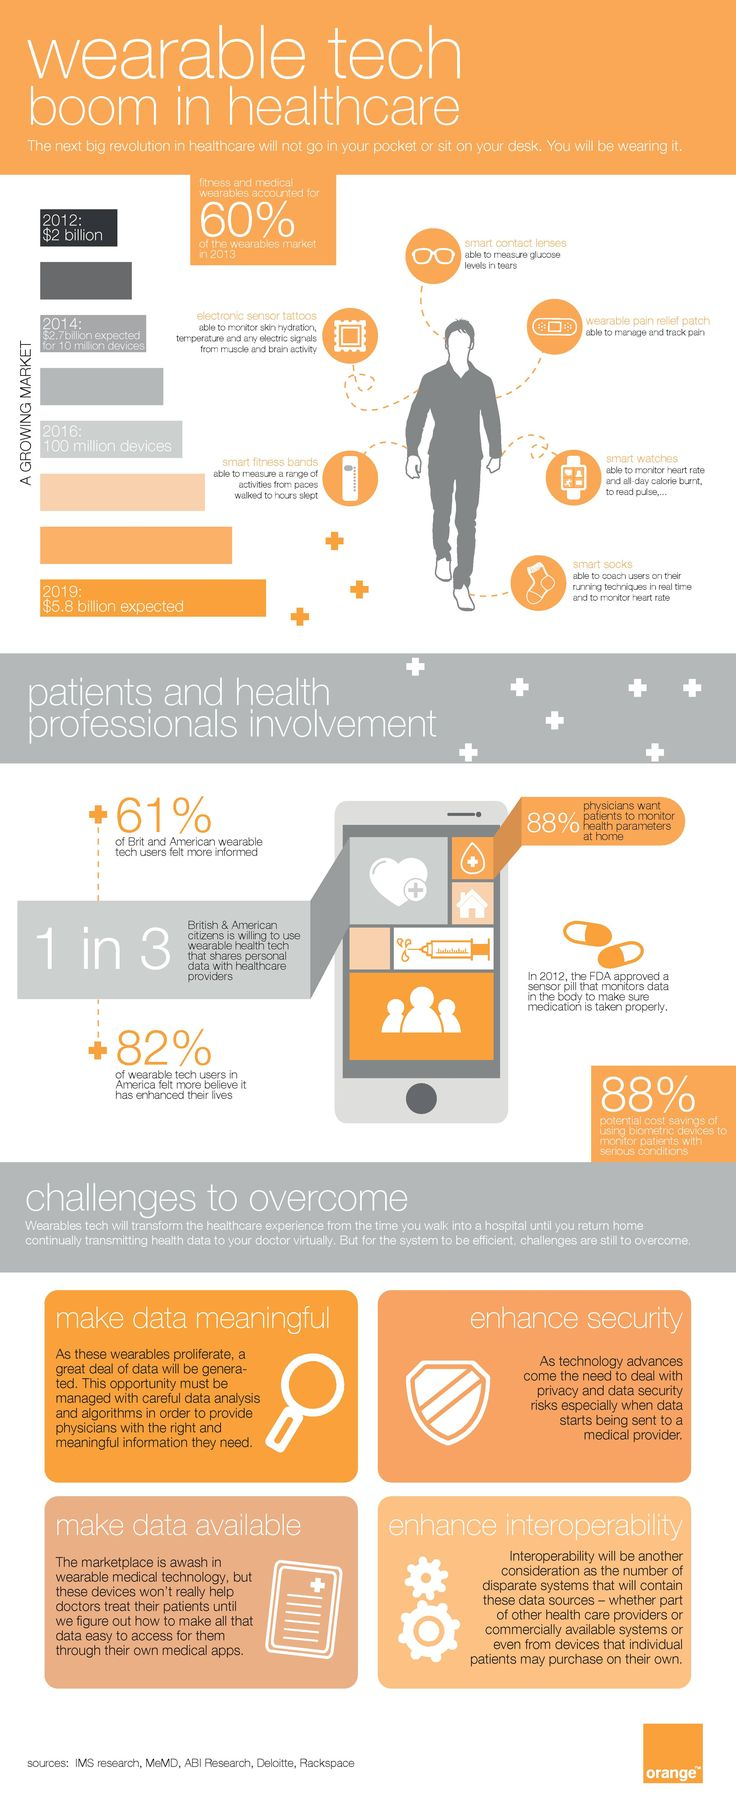 Fitness and medical wearables accounted for 60% of the wearables market in 2013. Healthcare wearables are empowering both patients and doctors with valuable data. However, challenges related to security and interoperability still exists